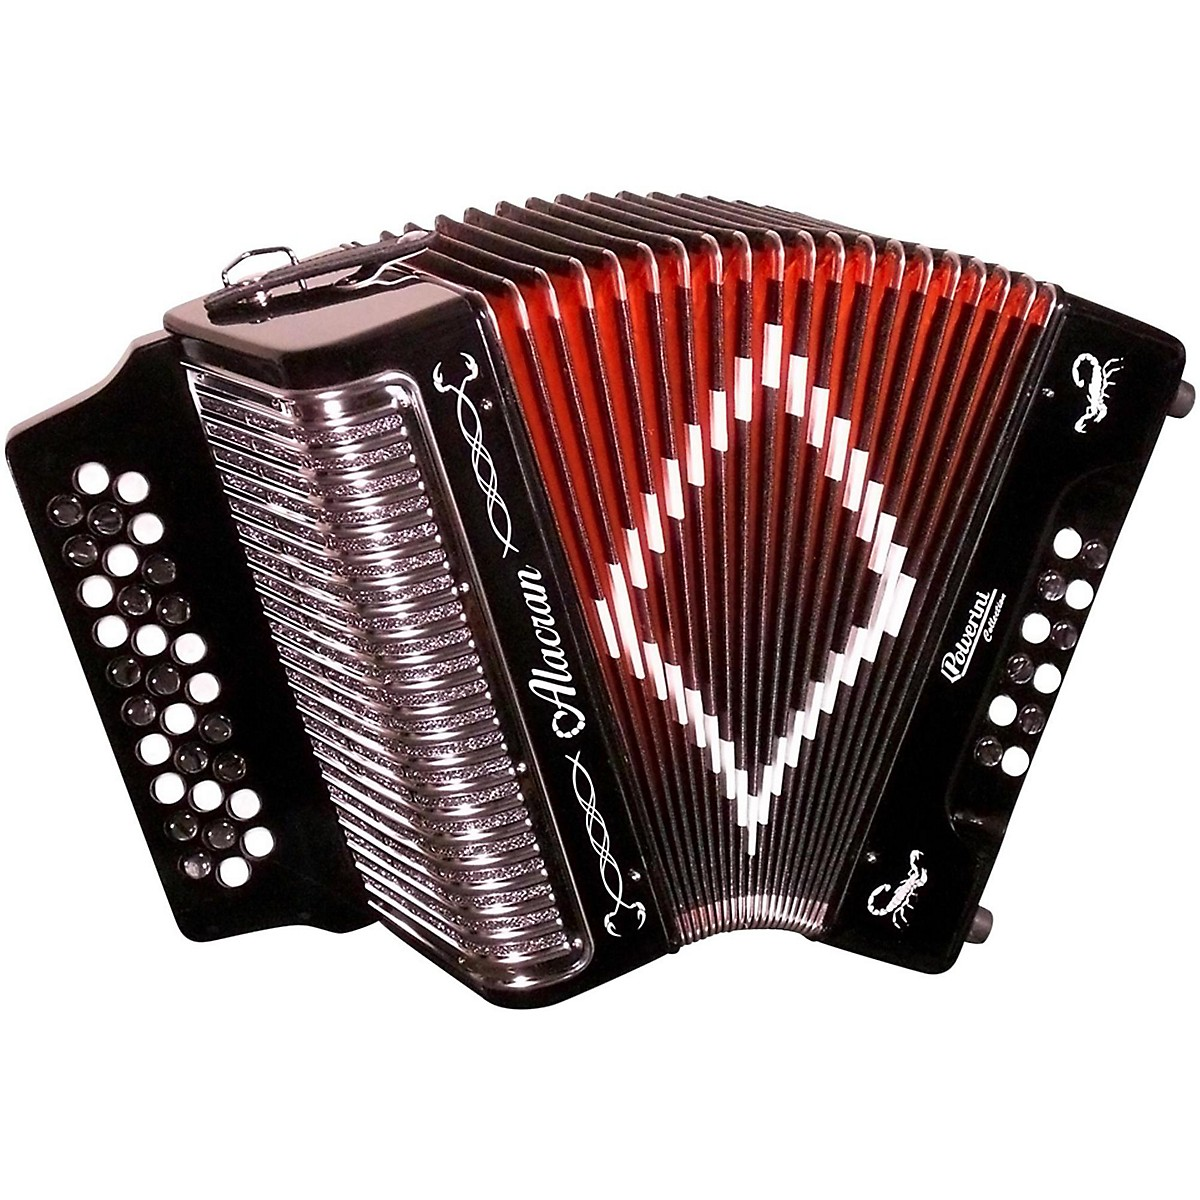 Alacran Accordion AL3112 Black with Case